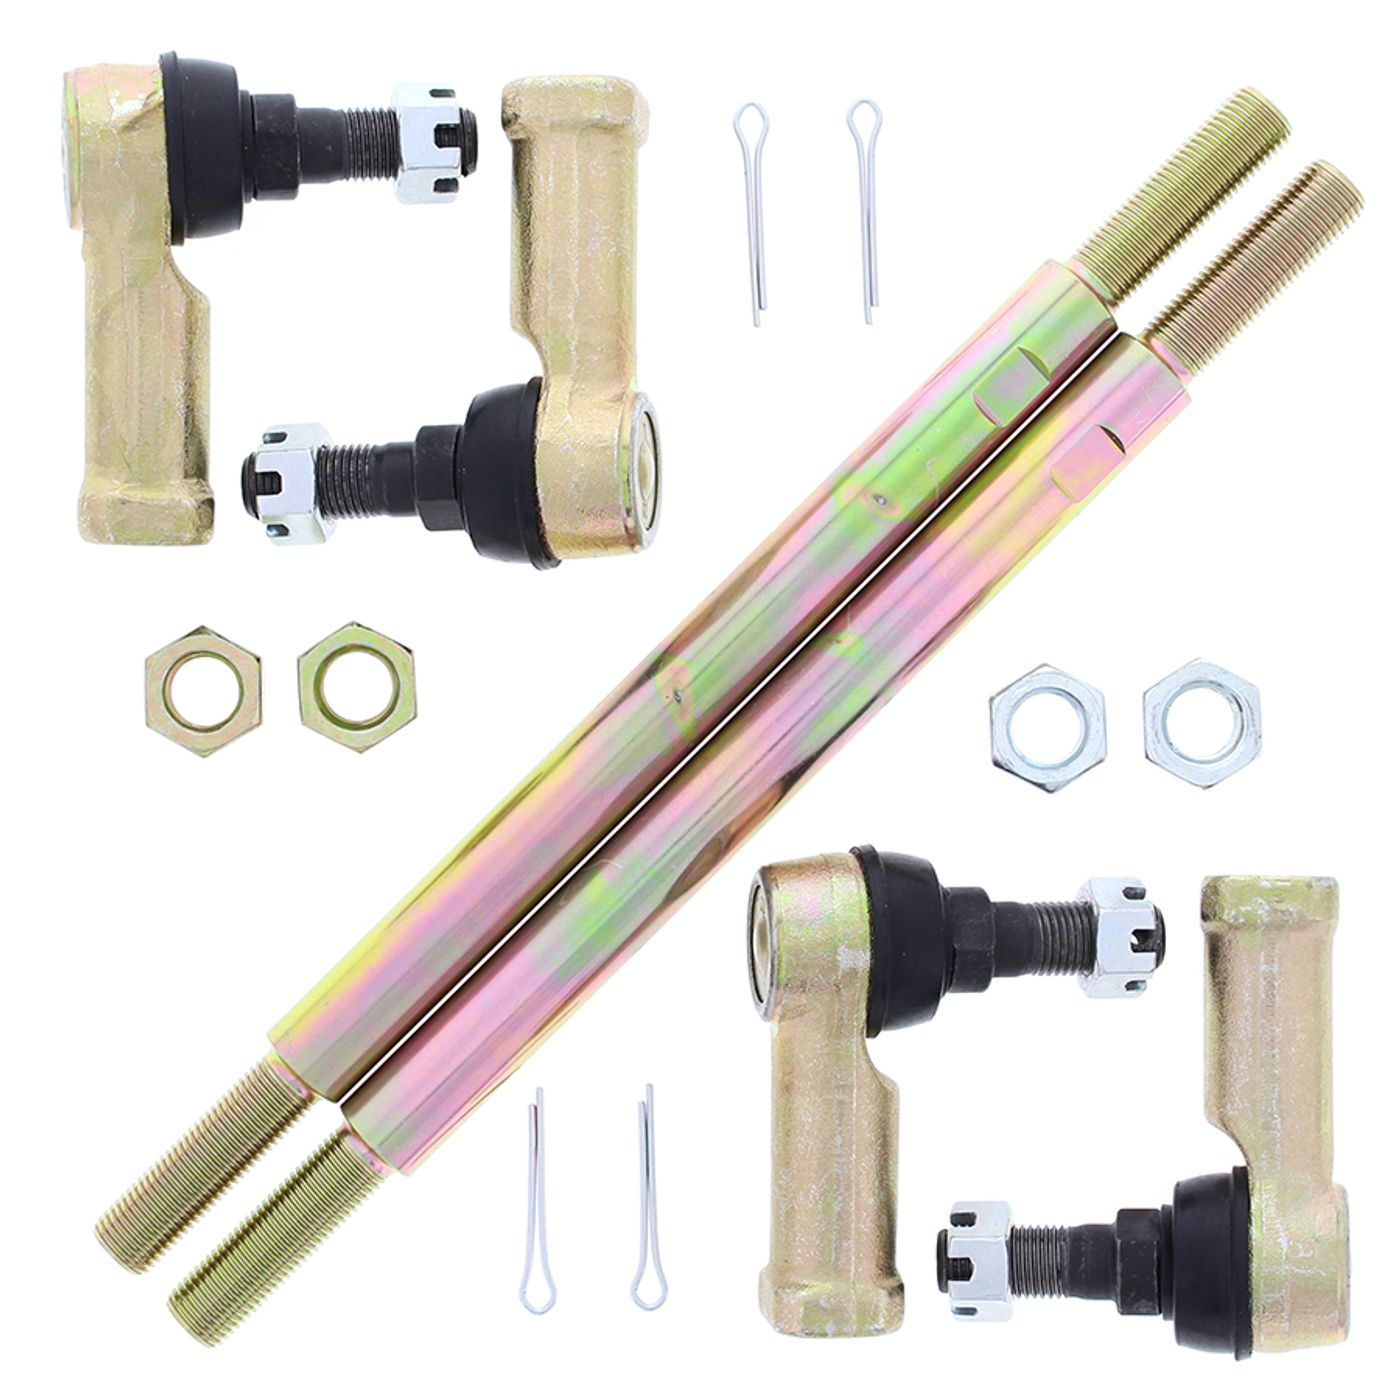 Wrp Tie Rod Kits - WRP521030 image